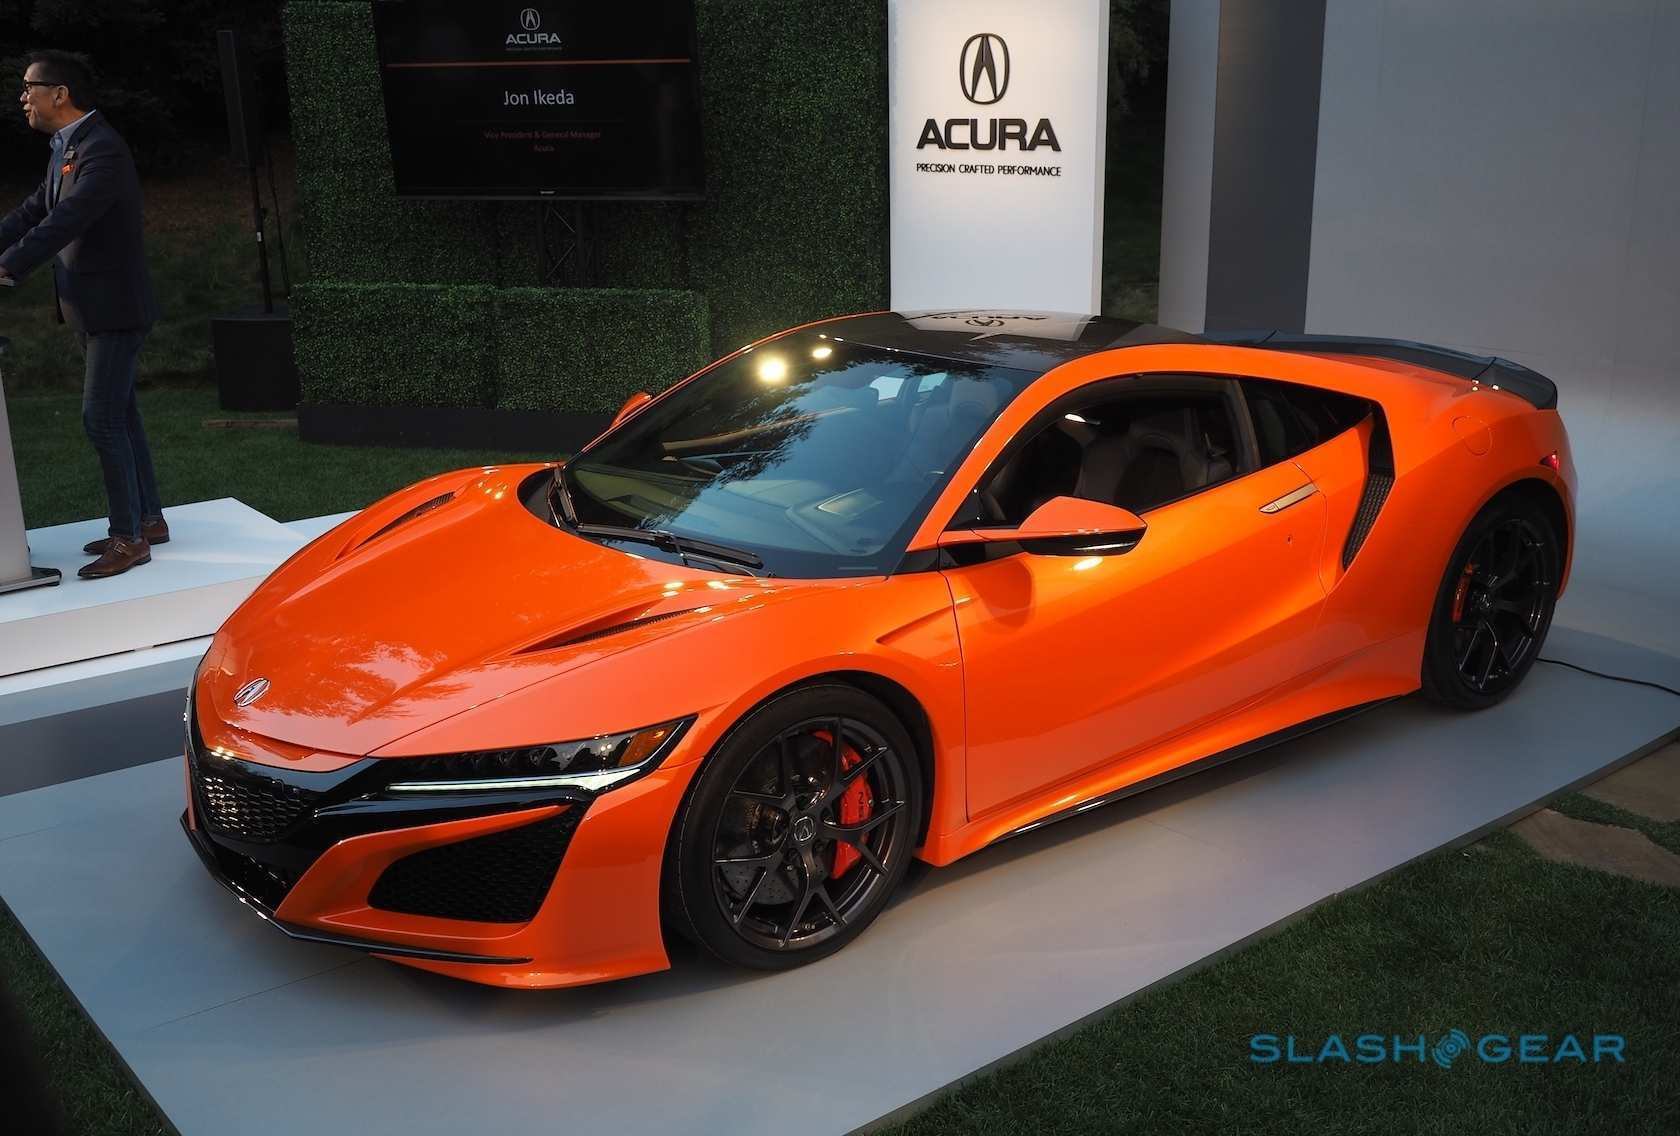 97 All New New 2019 Acura Nsx Msrp Picture Release Date And Review Ratings by New 2019 Acura Nsx Msrp Picture Release Date And Review